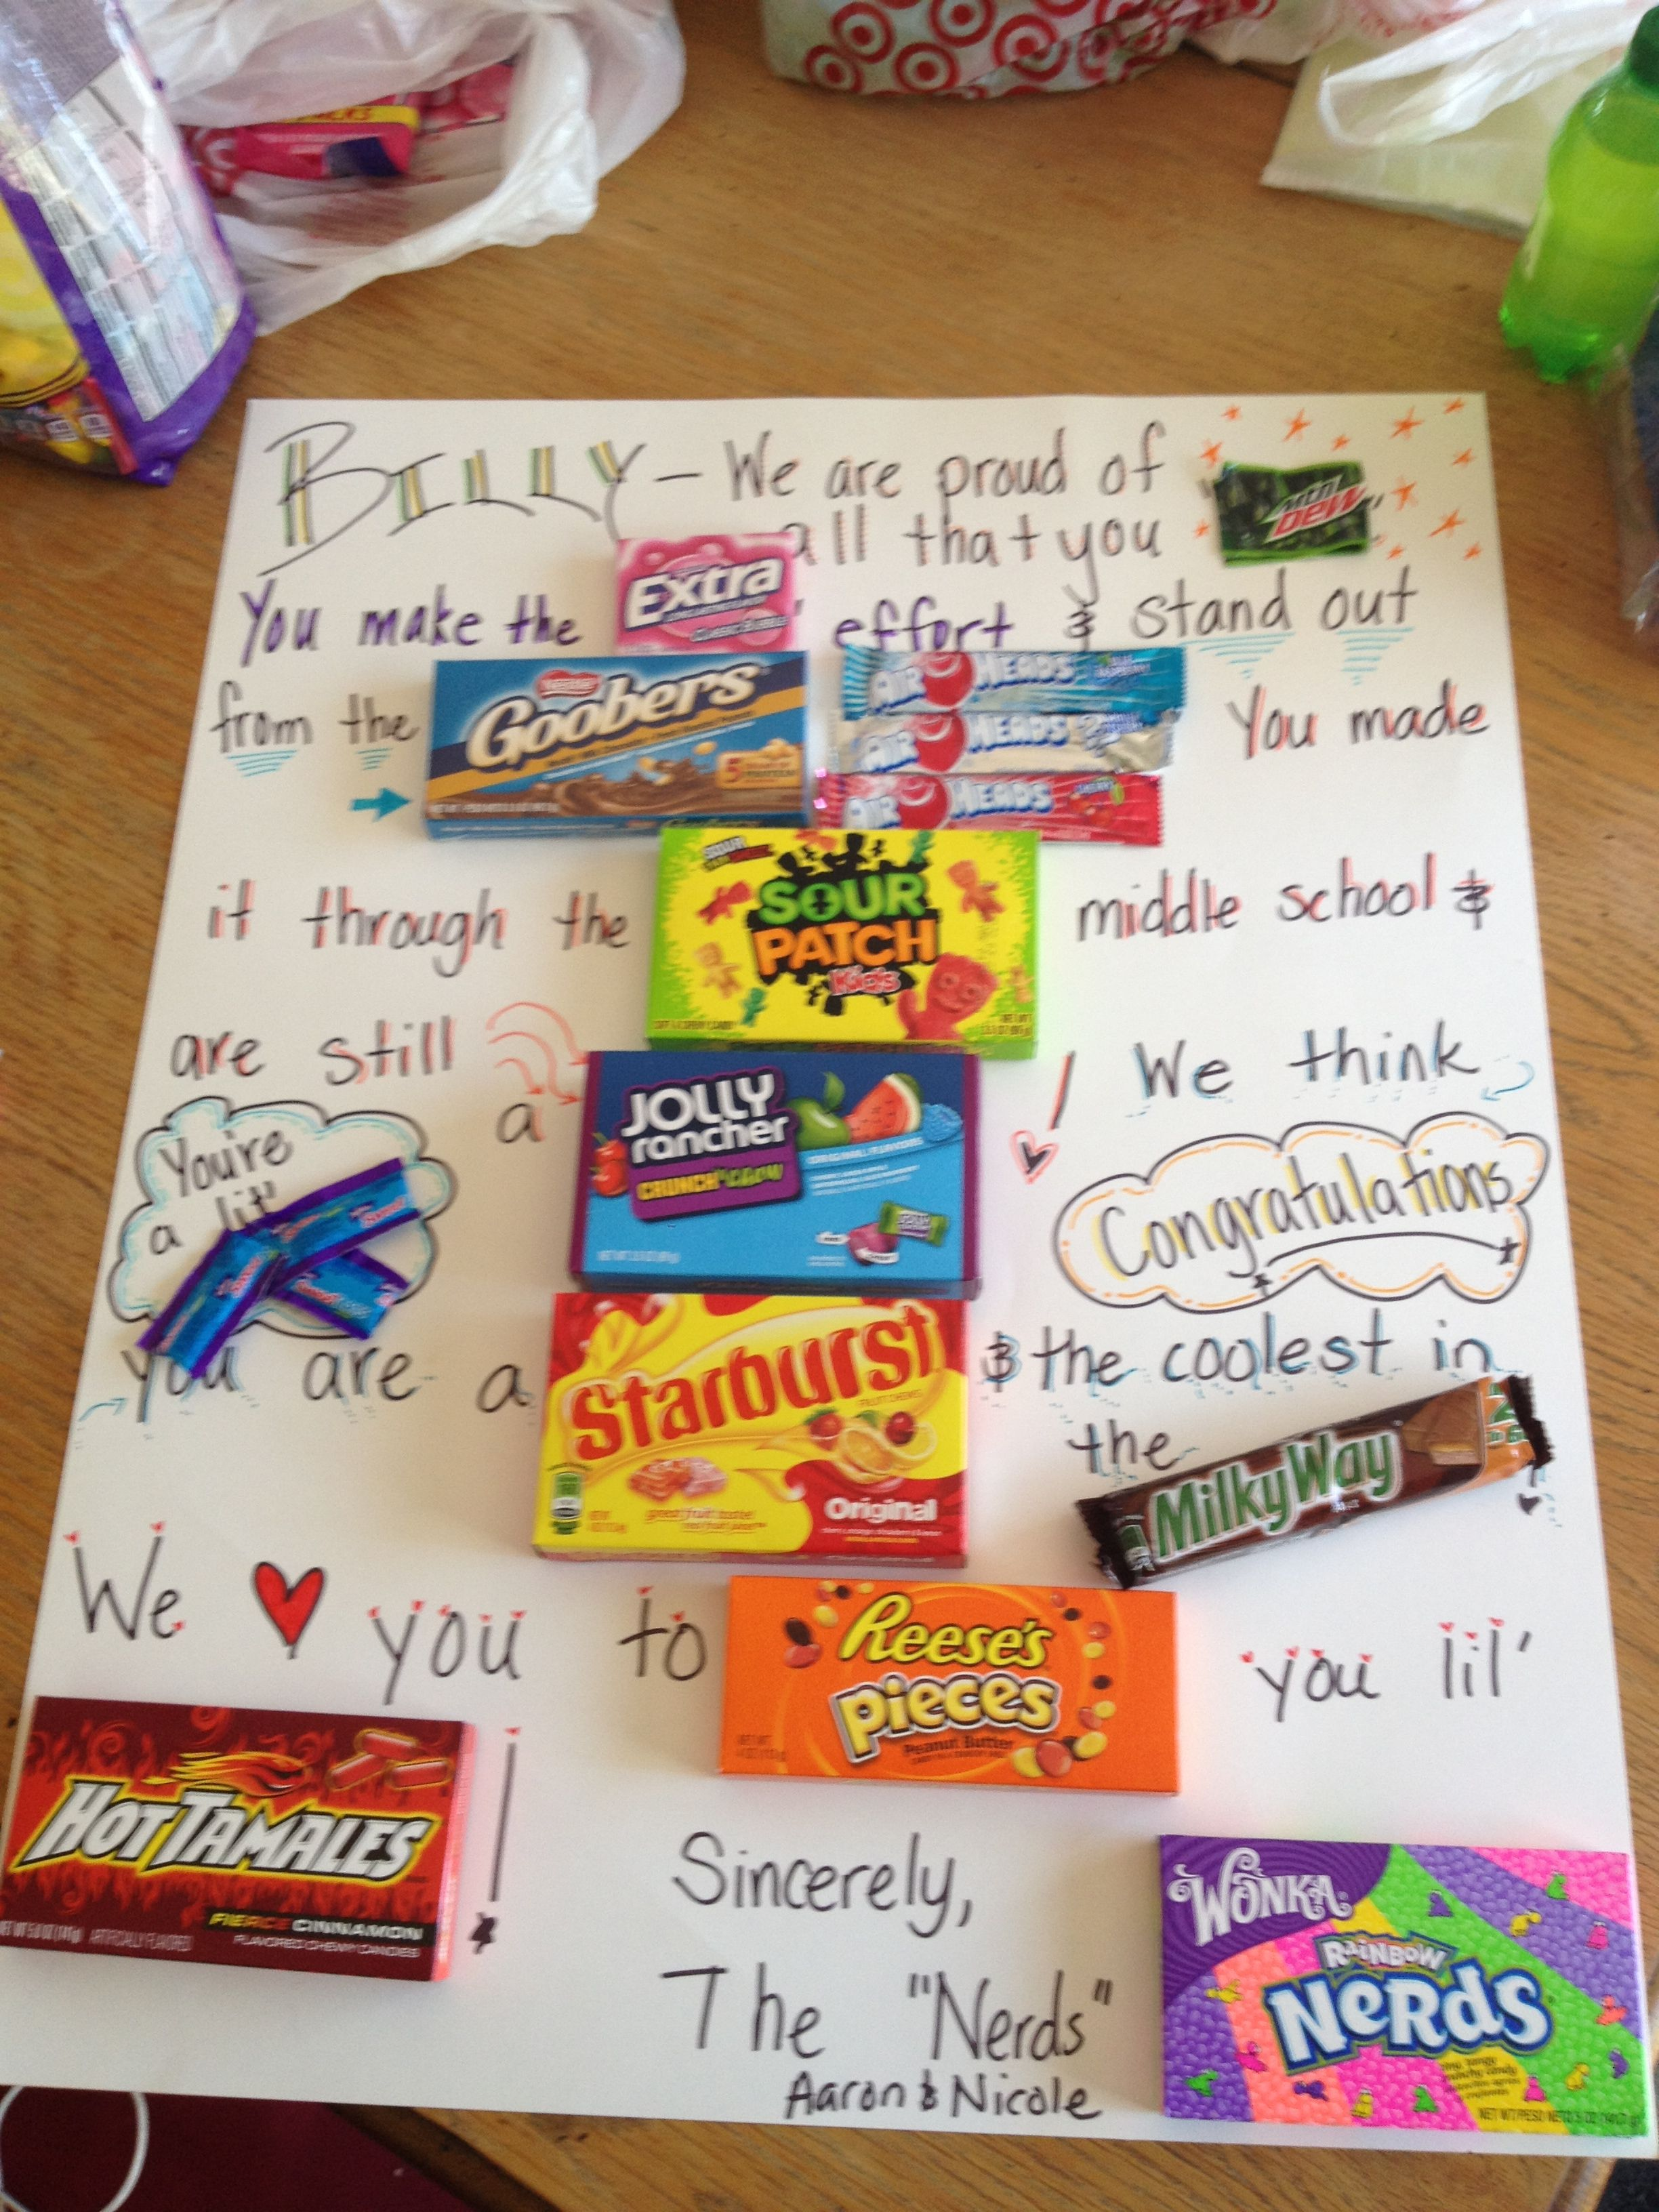 A Candy Card For A Boy Promoting Graduating Middle School